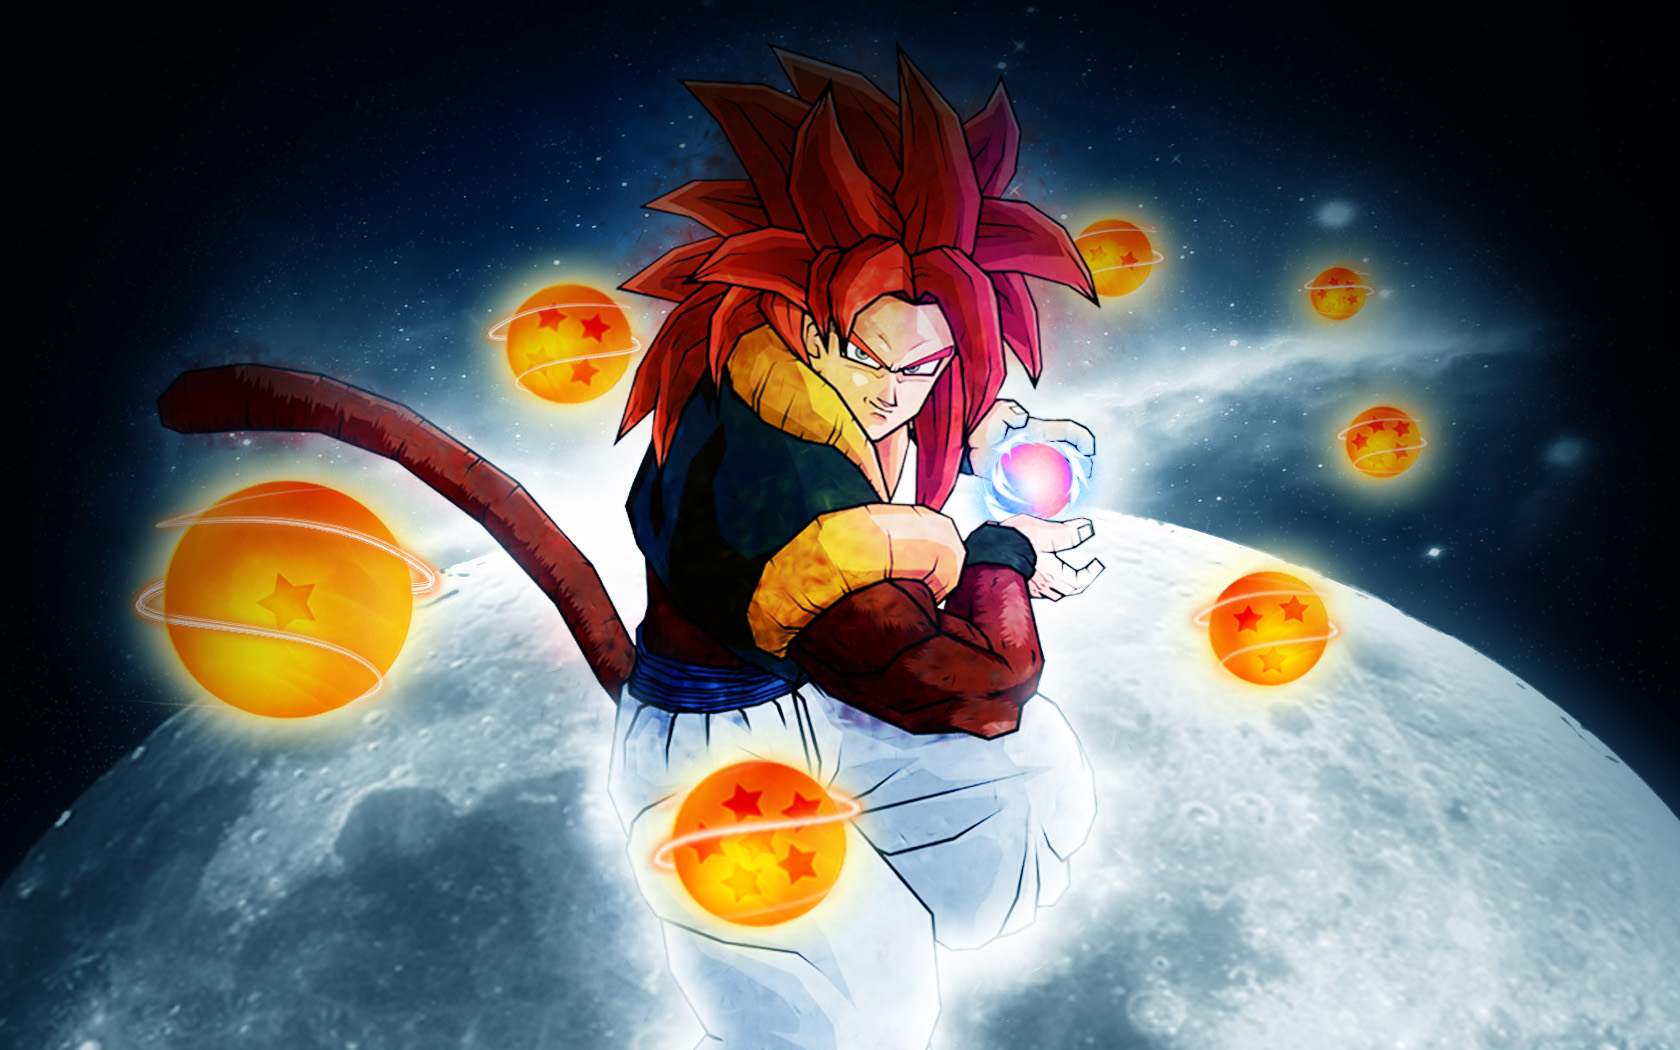 Dragon Ball Gt Wallpapers Dragon Ball Gt Hd 884340 Hd